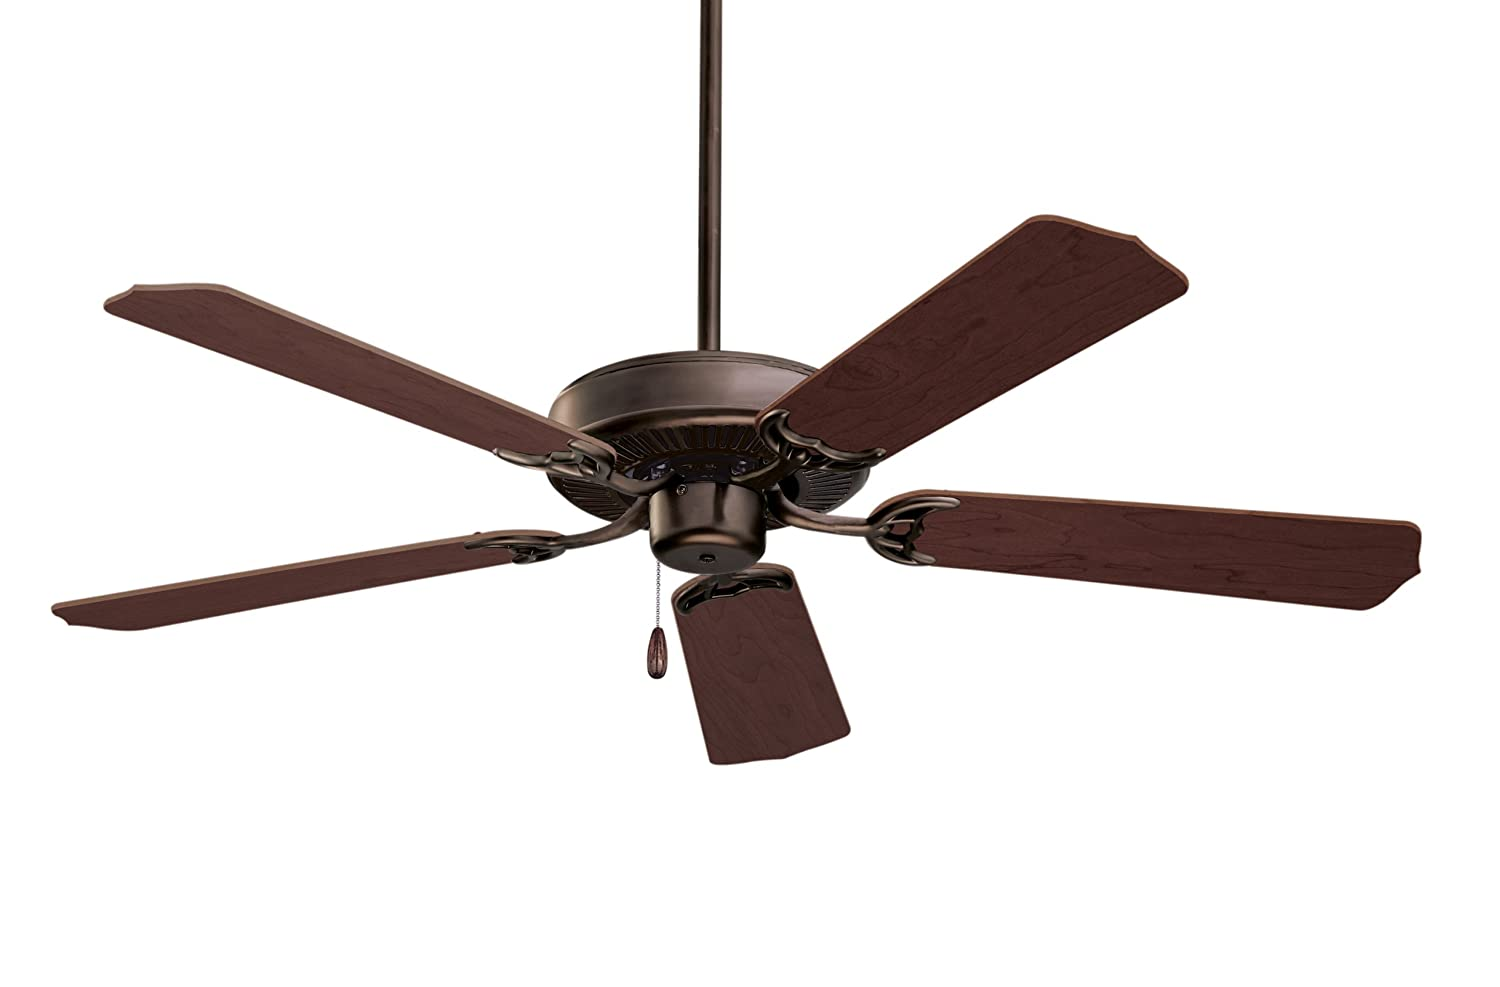 Emerson ceiling fans cf700orb builder 52 inch energy star ceiling emerson ceiling fans cf700orb builder 52 inch energy star ceiling fan light kit adaptable oil rubbed bronze finish amazon aloadofball Image collections